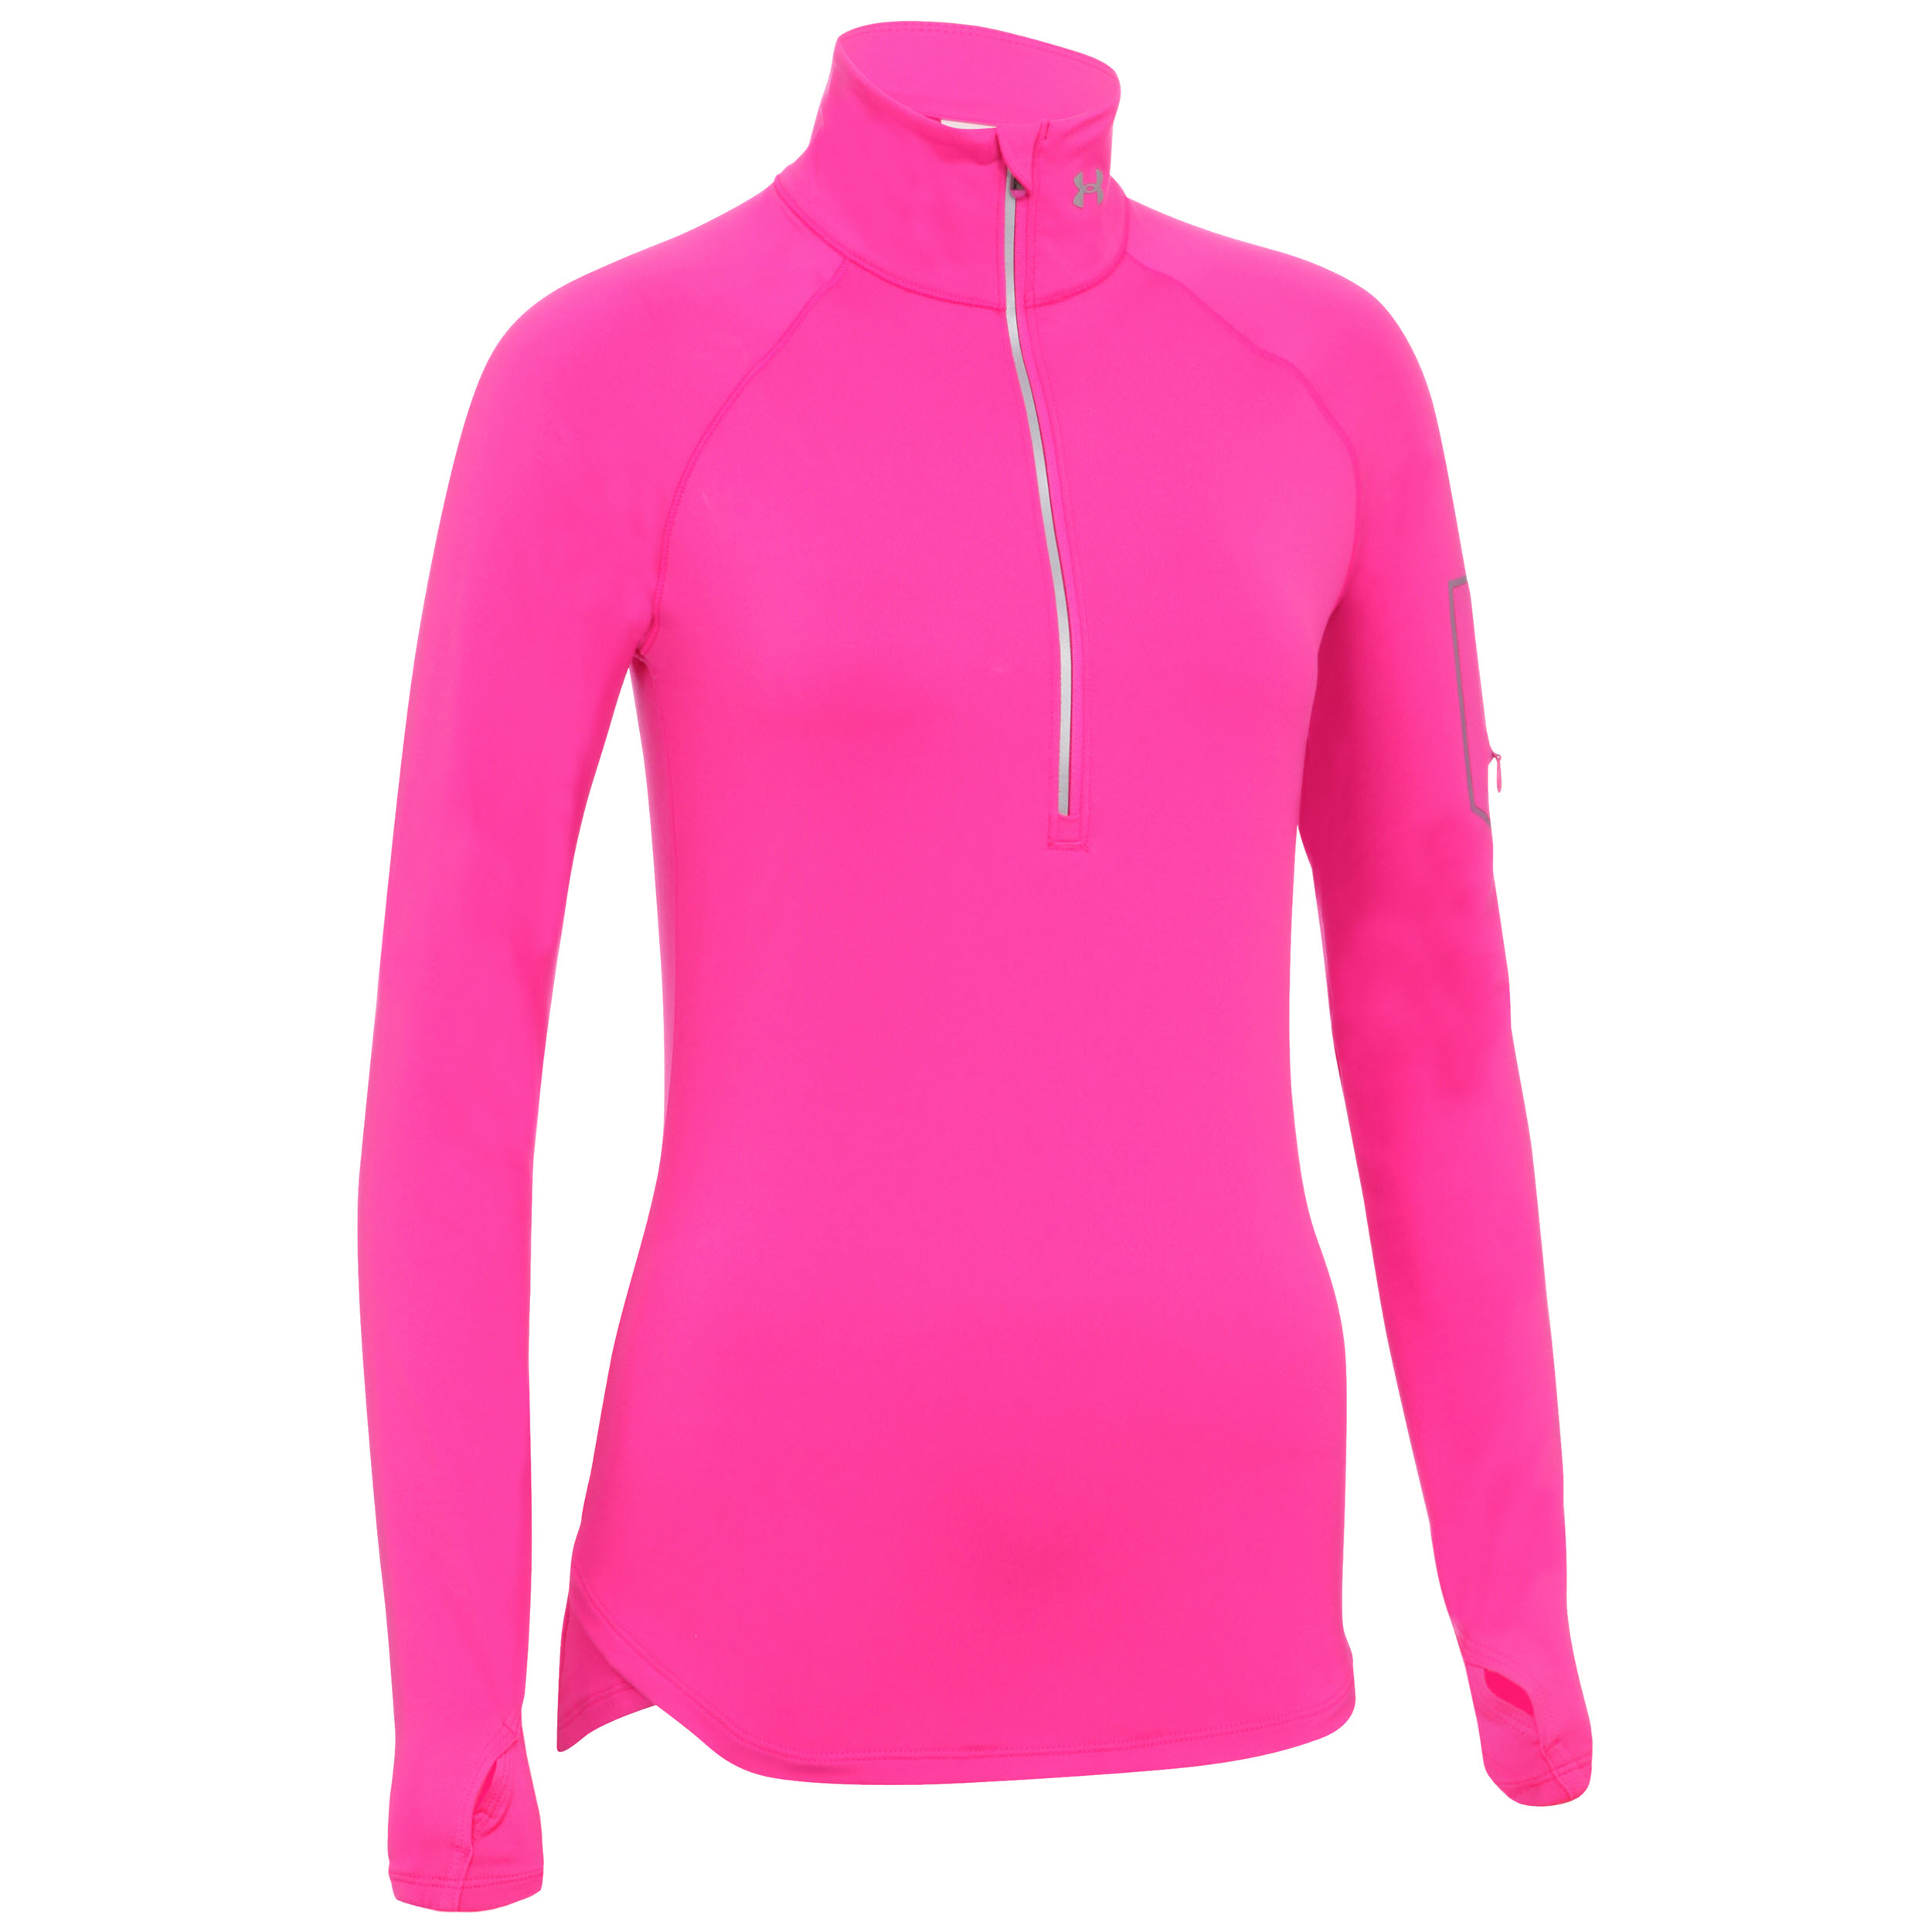 Buy pink under armour long sleeve shirt 57 off for Yellow under armour long sleeve shirt